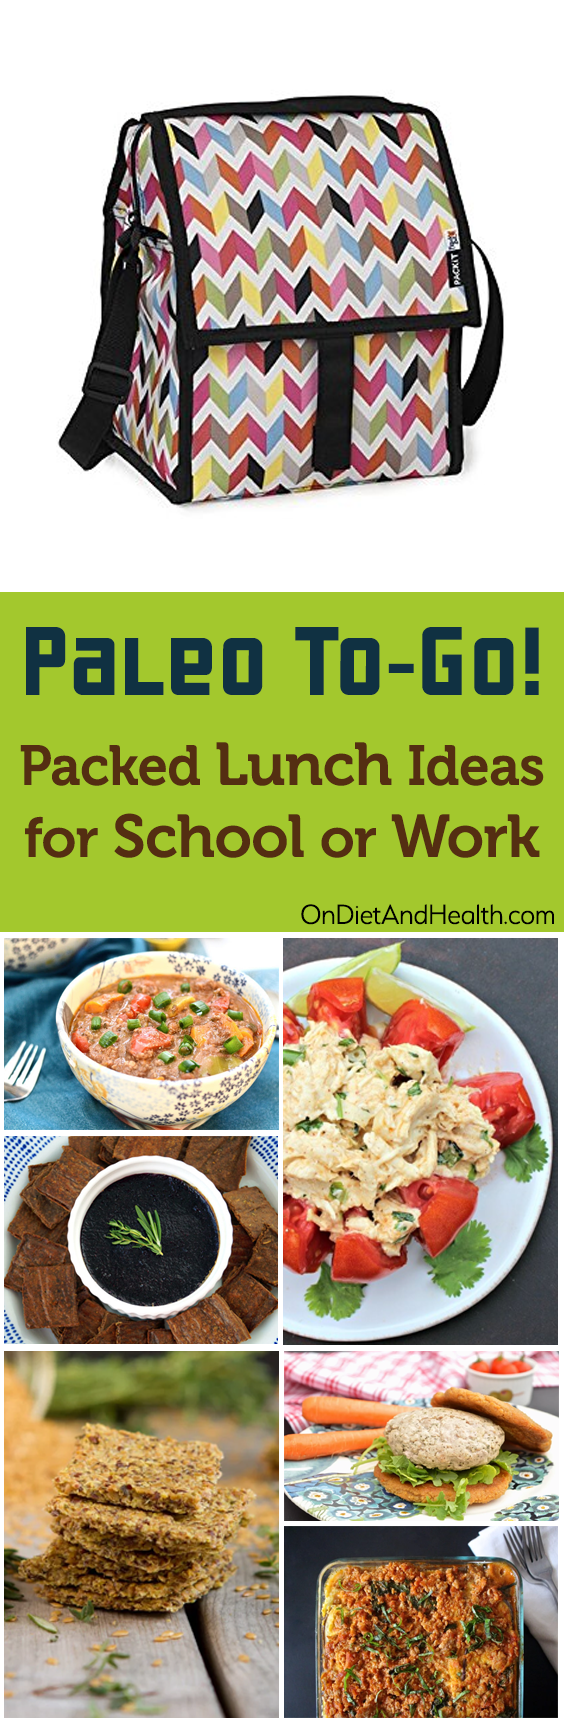 Paleo To-Go! Packed Lunch Ideas for School or Work // OnDietAndHealth.com